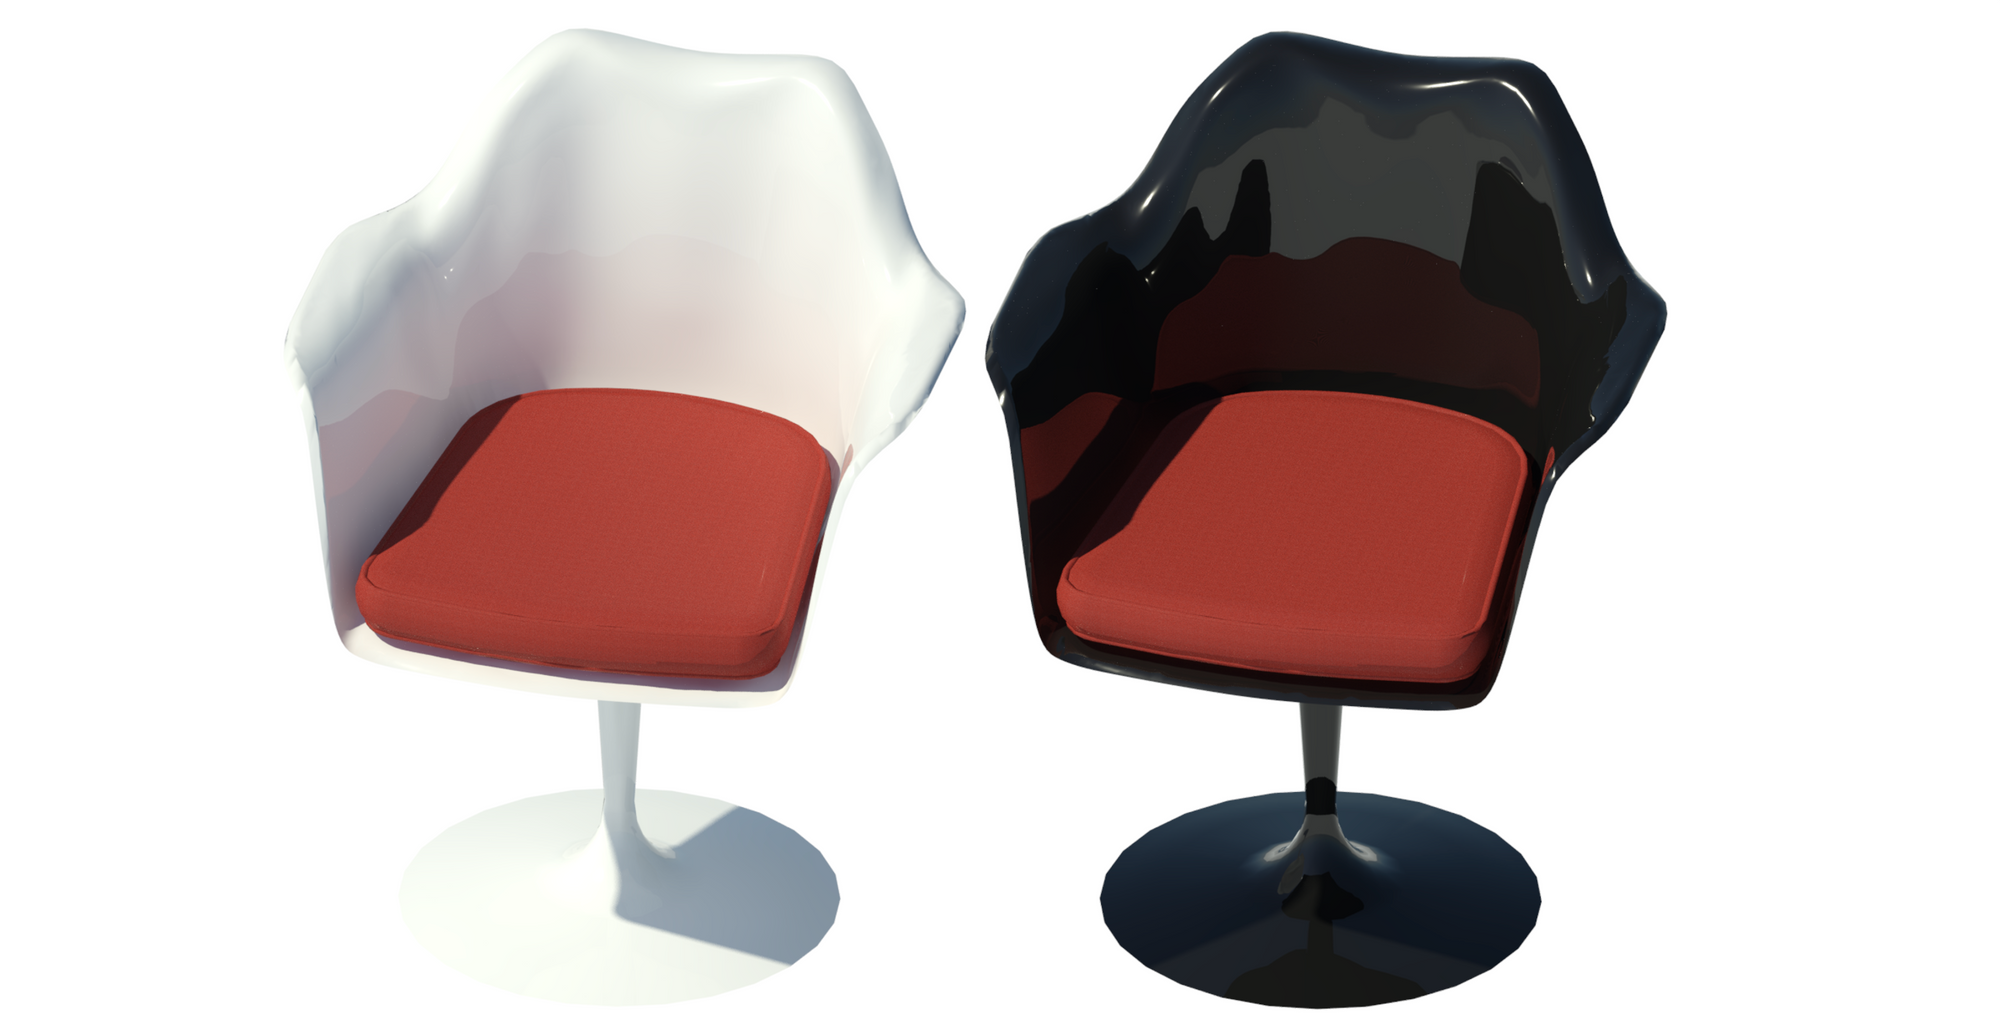 Revit raytrace showing red textile cushion in black and white body variations.